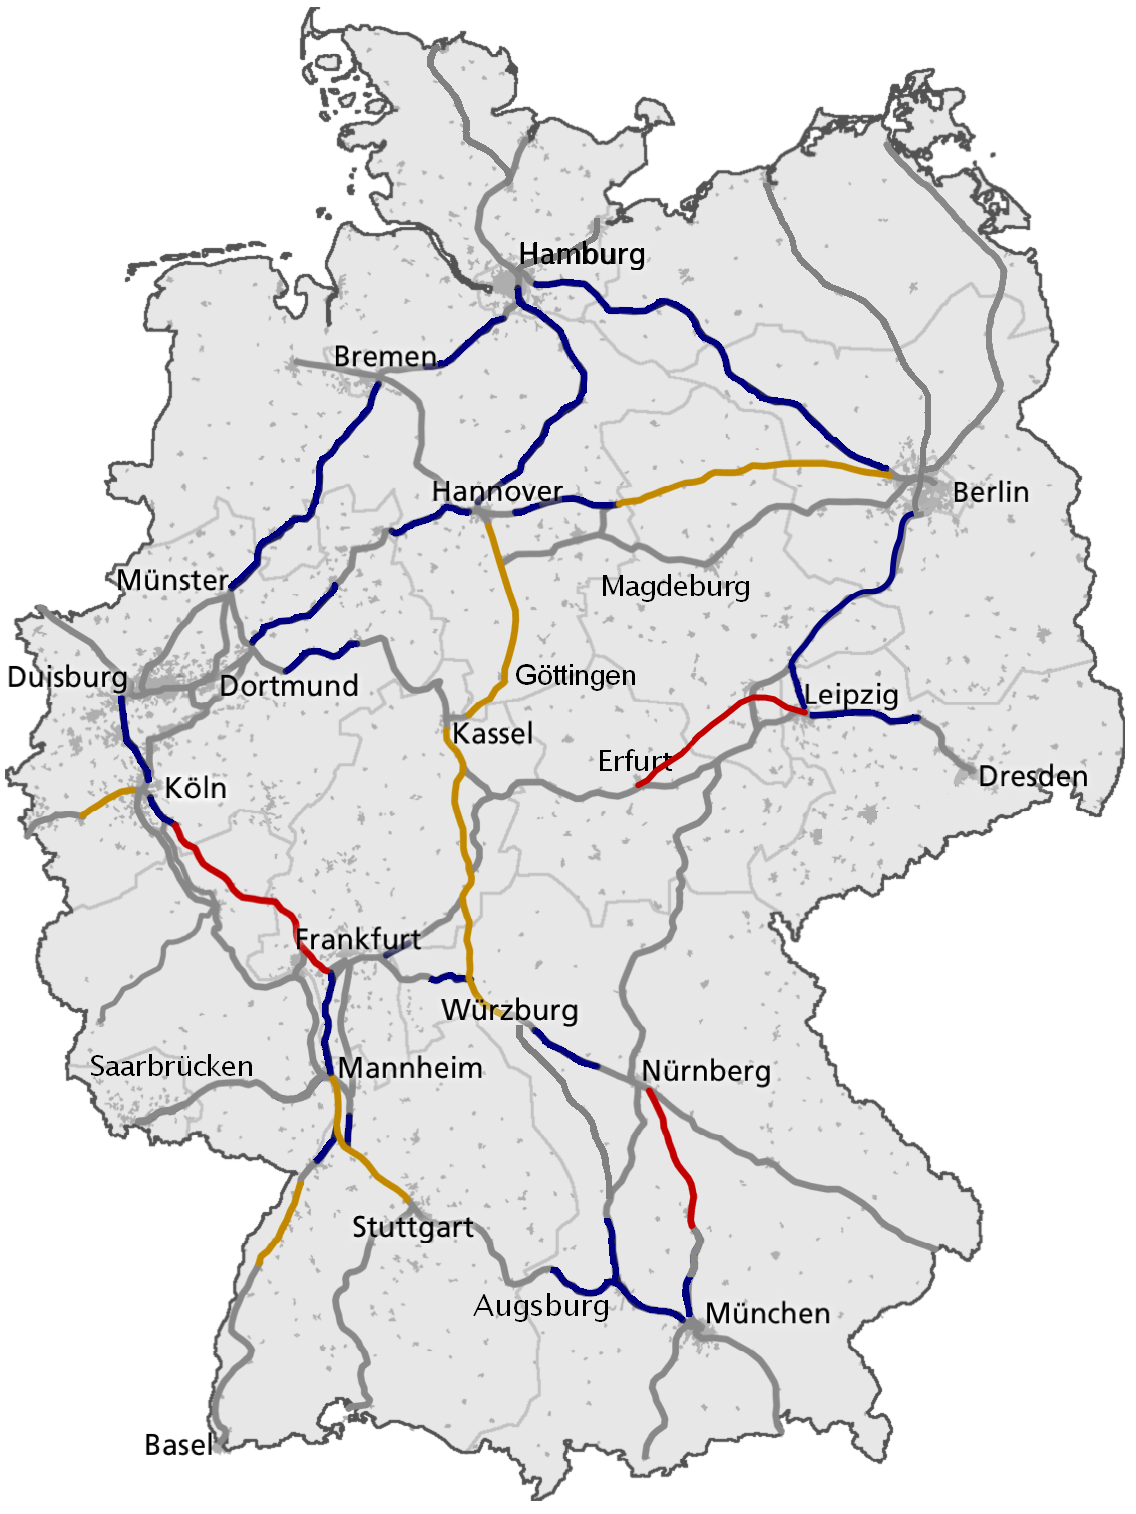 Germany-ICE-network